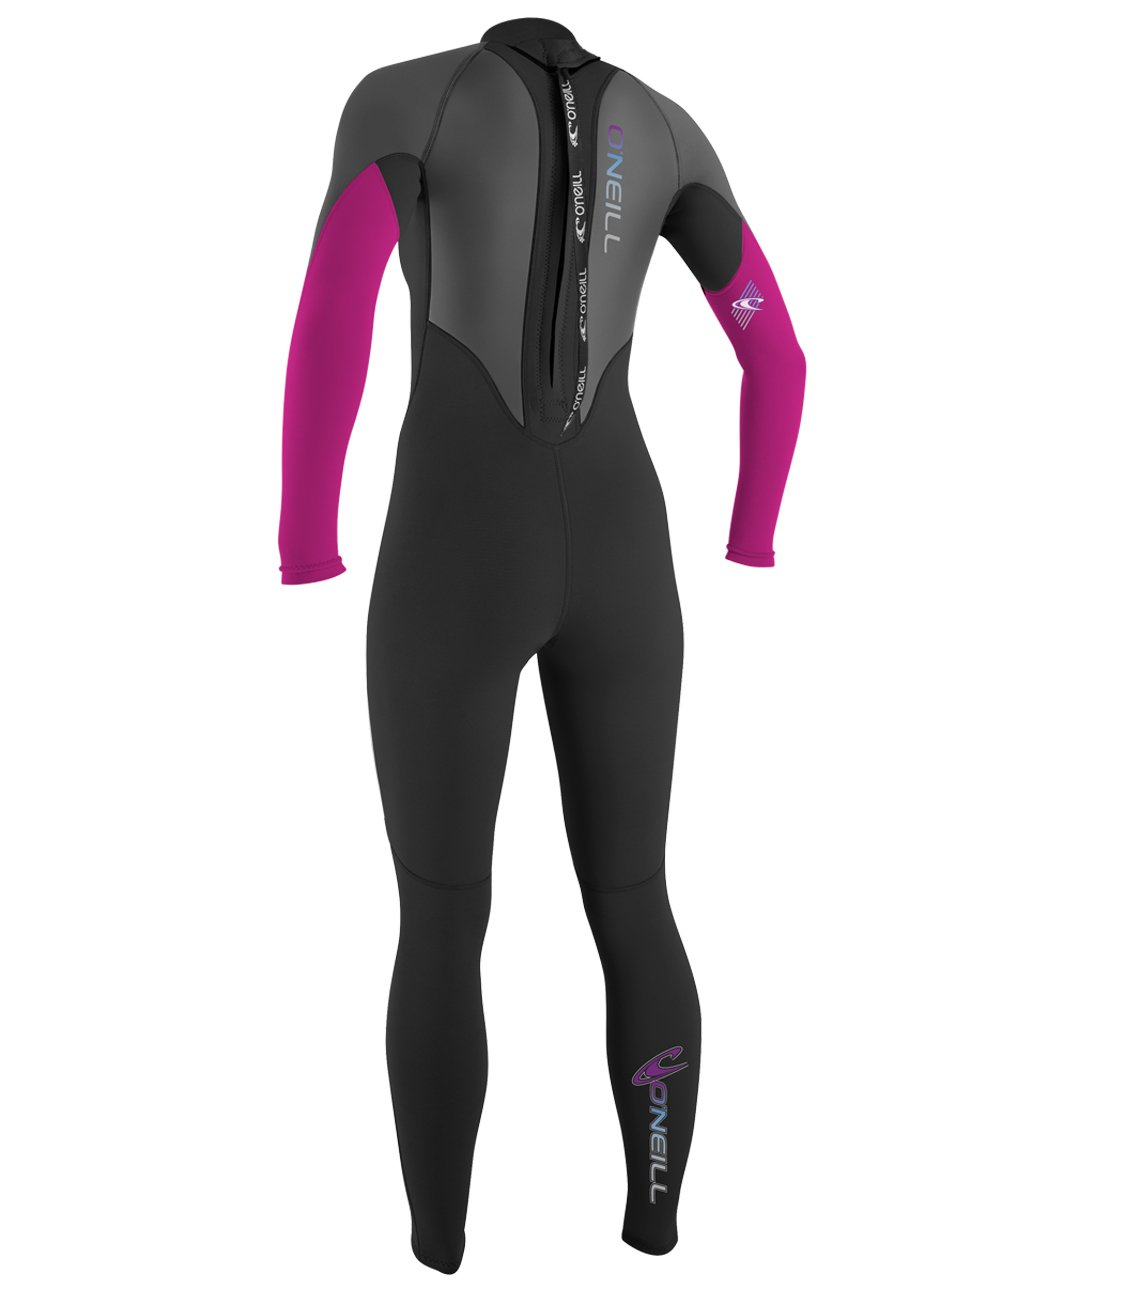 O'Neill   Women's Reactor 3/2mm Back Zip Full Wetsuit,Black/Graphite/Berry,4 by O'Neill Wetsuits (Image #2)